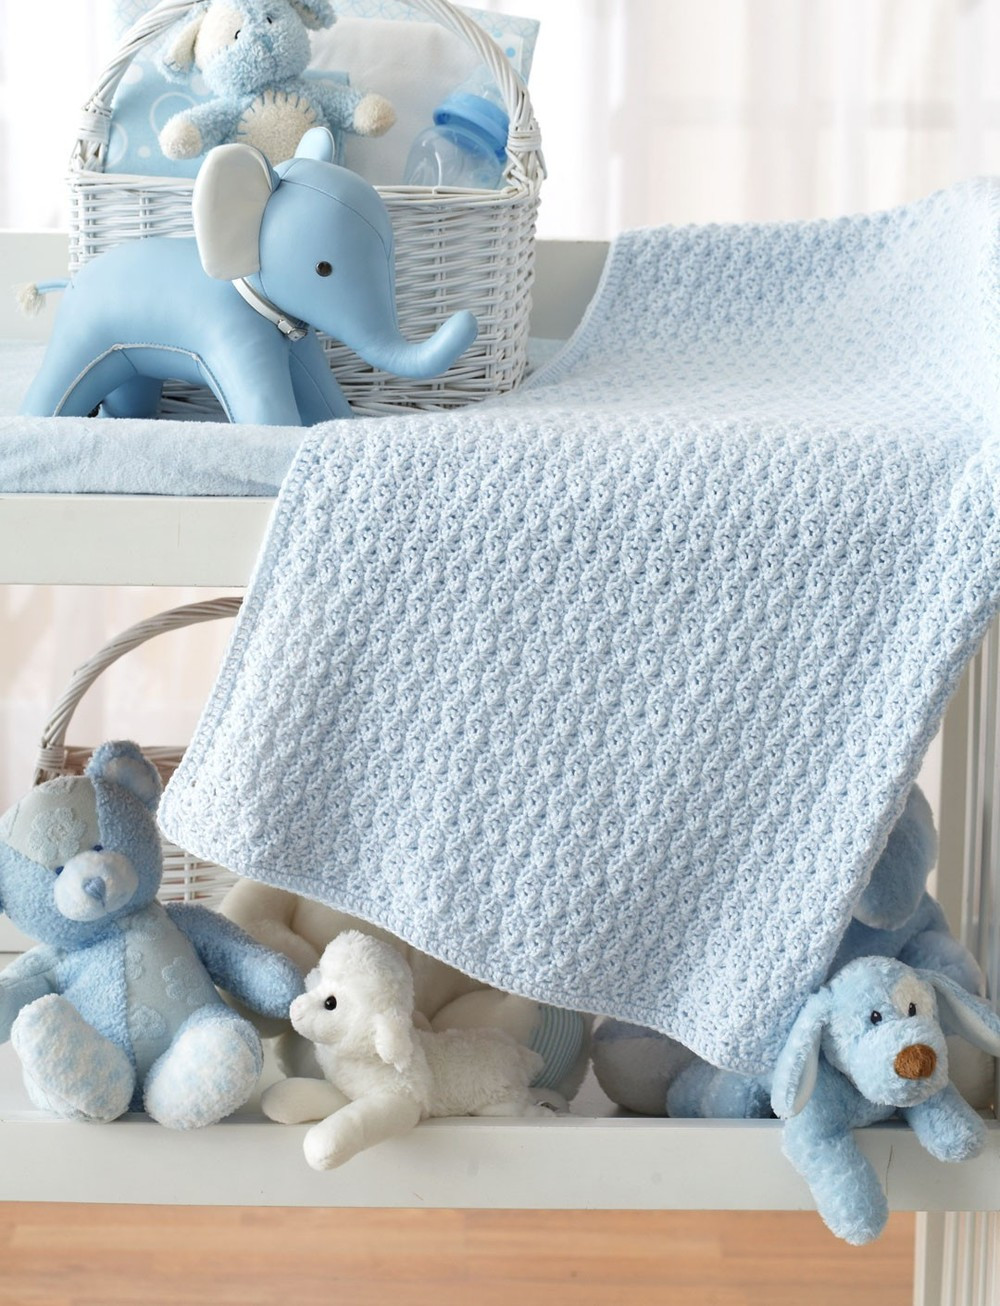 Baby Blanket Patterns Best Of Bundle In Blue Crochet Baby Blanket Pattern Of Delightful 50 Pictures Baby Blanket Patterns